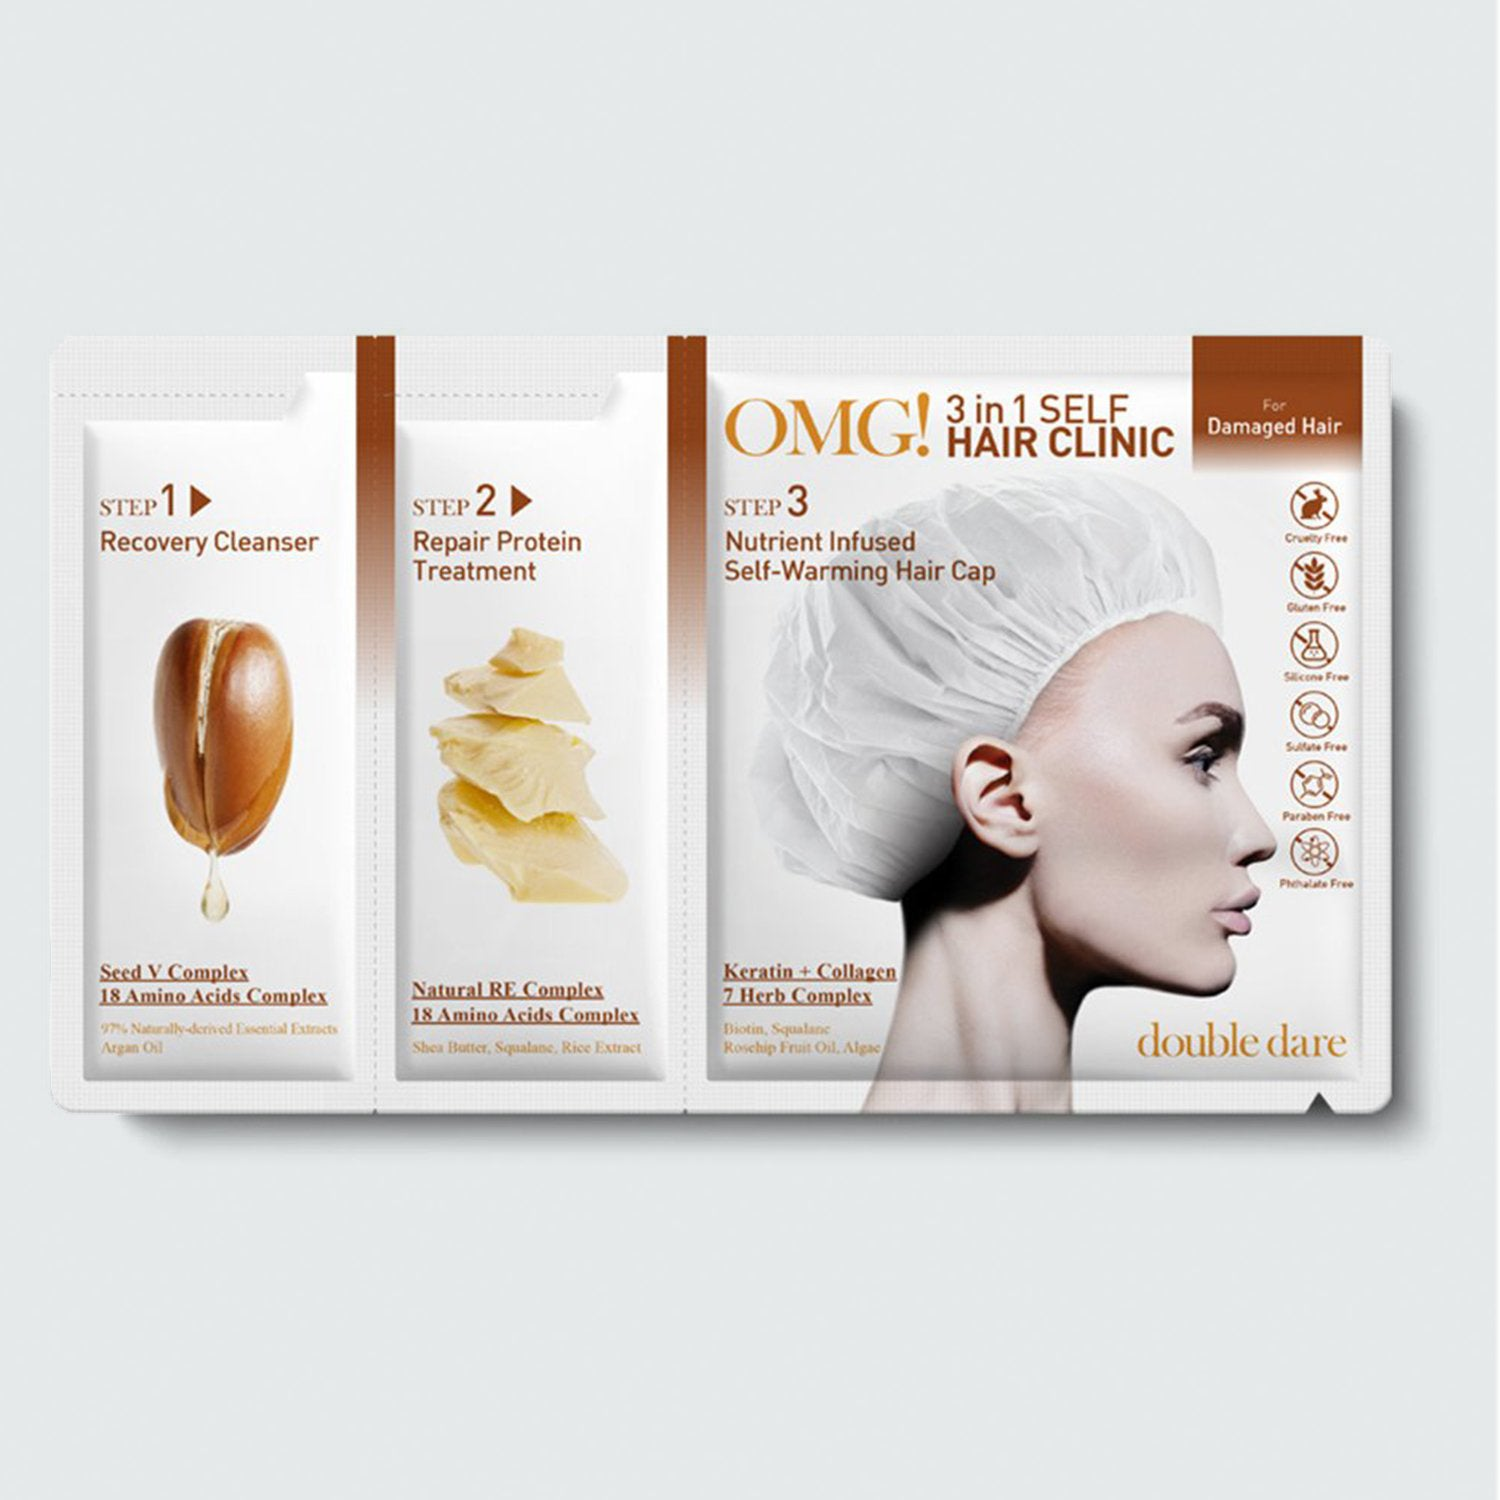 OMG! 3in1 Self HAIR <br> CLINIC for Damaged Hair - DOUBLE DARE